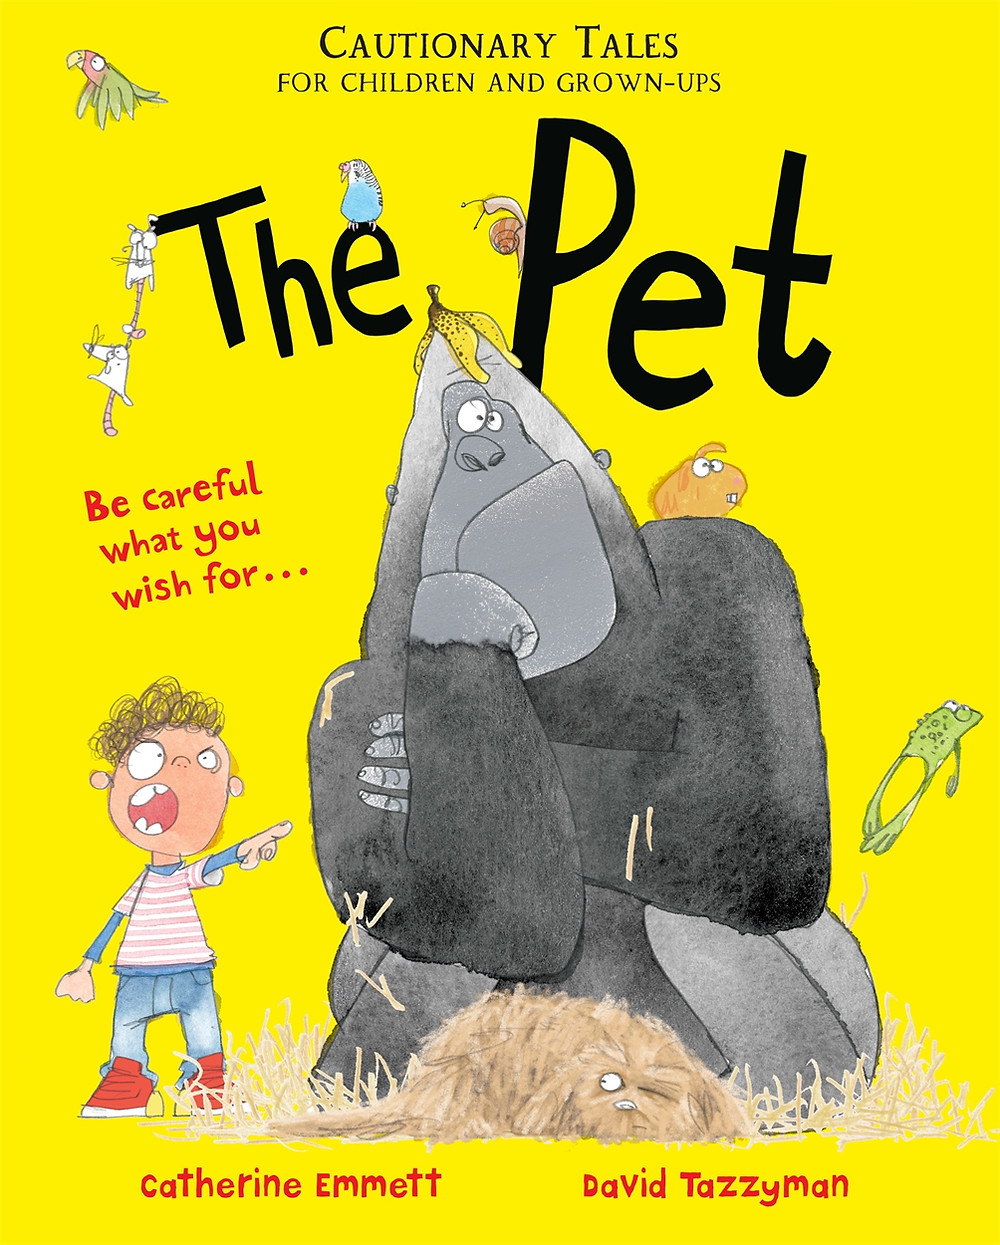 The Pet by Catherine Emmett and David Tazzyman